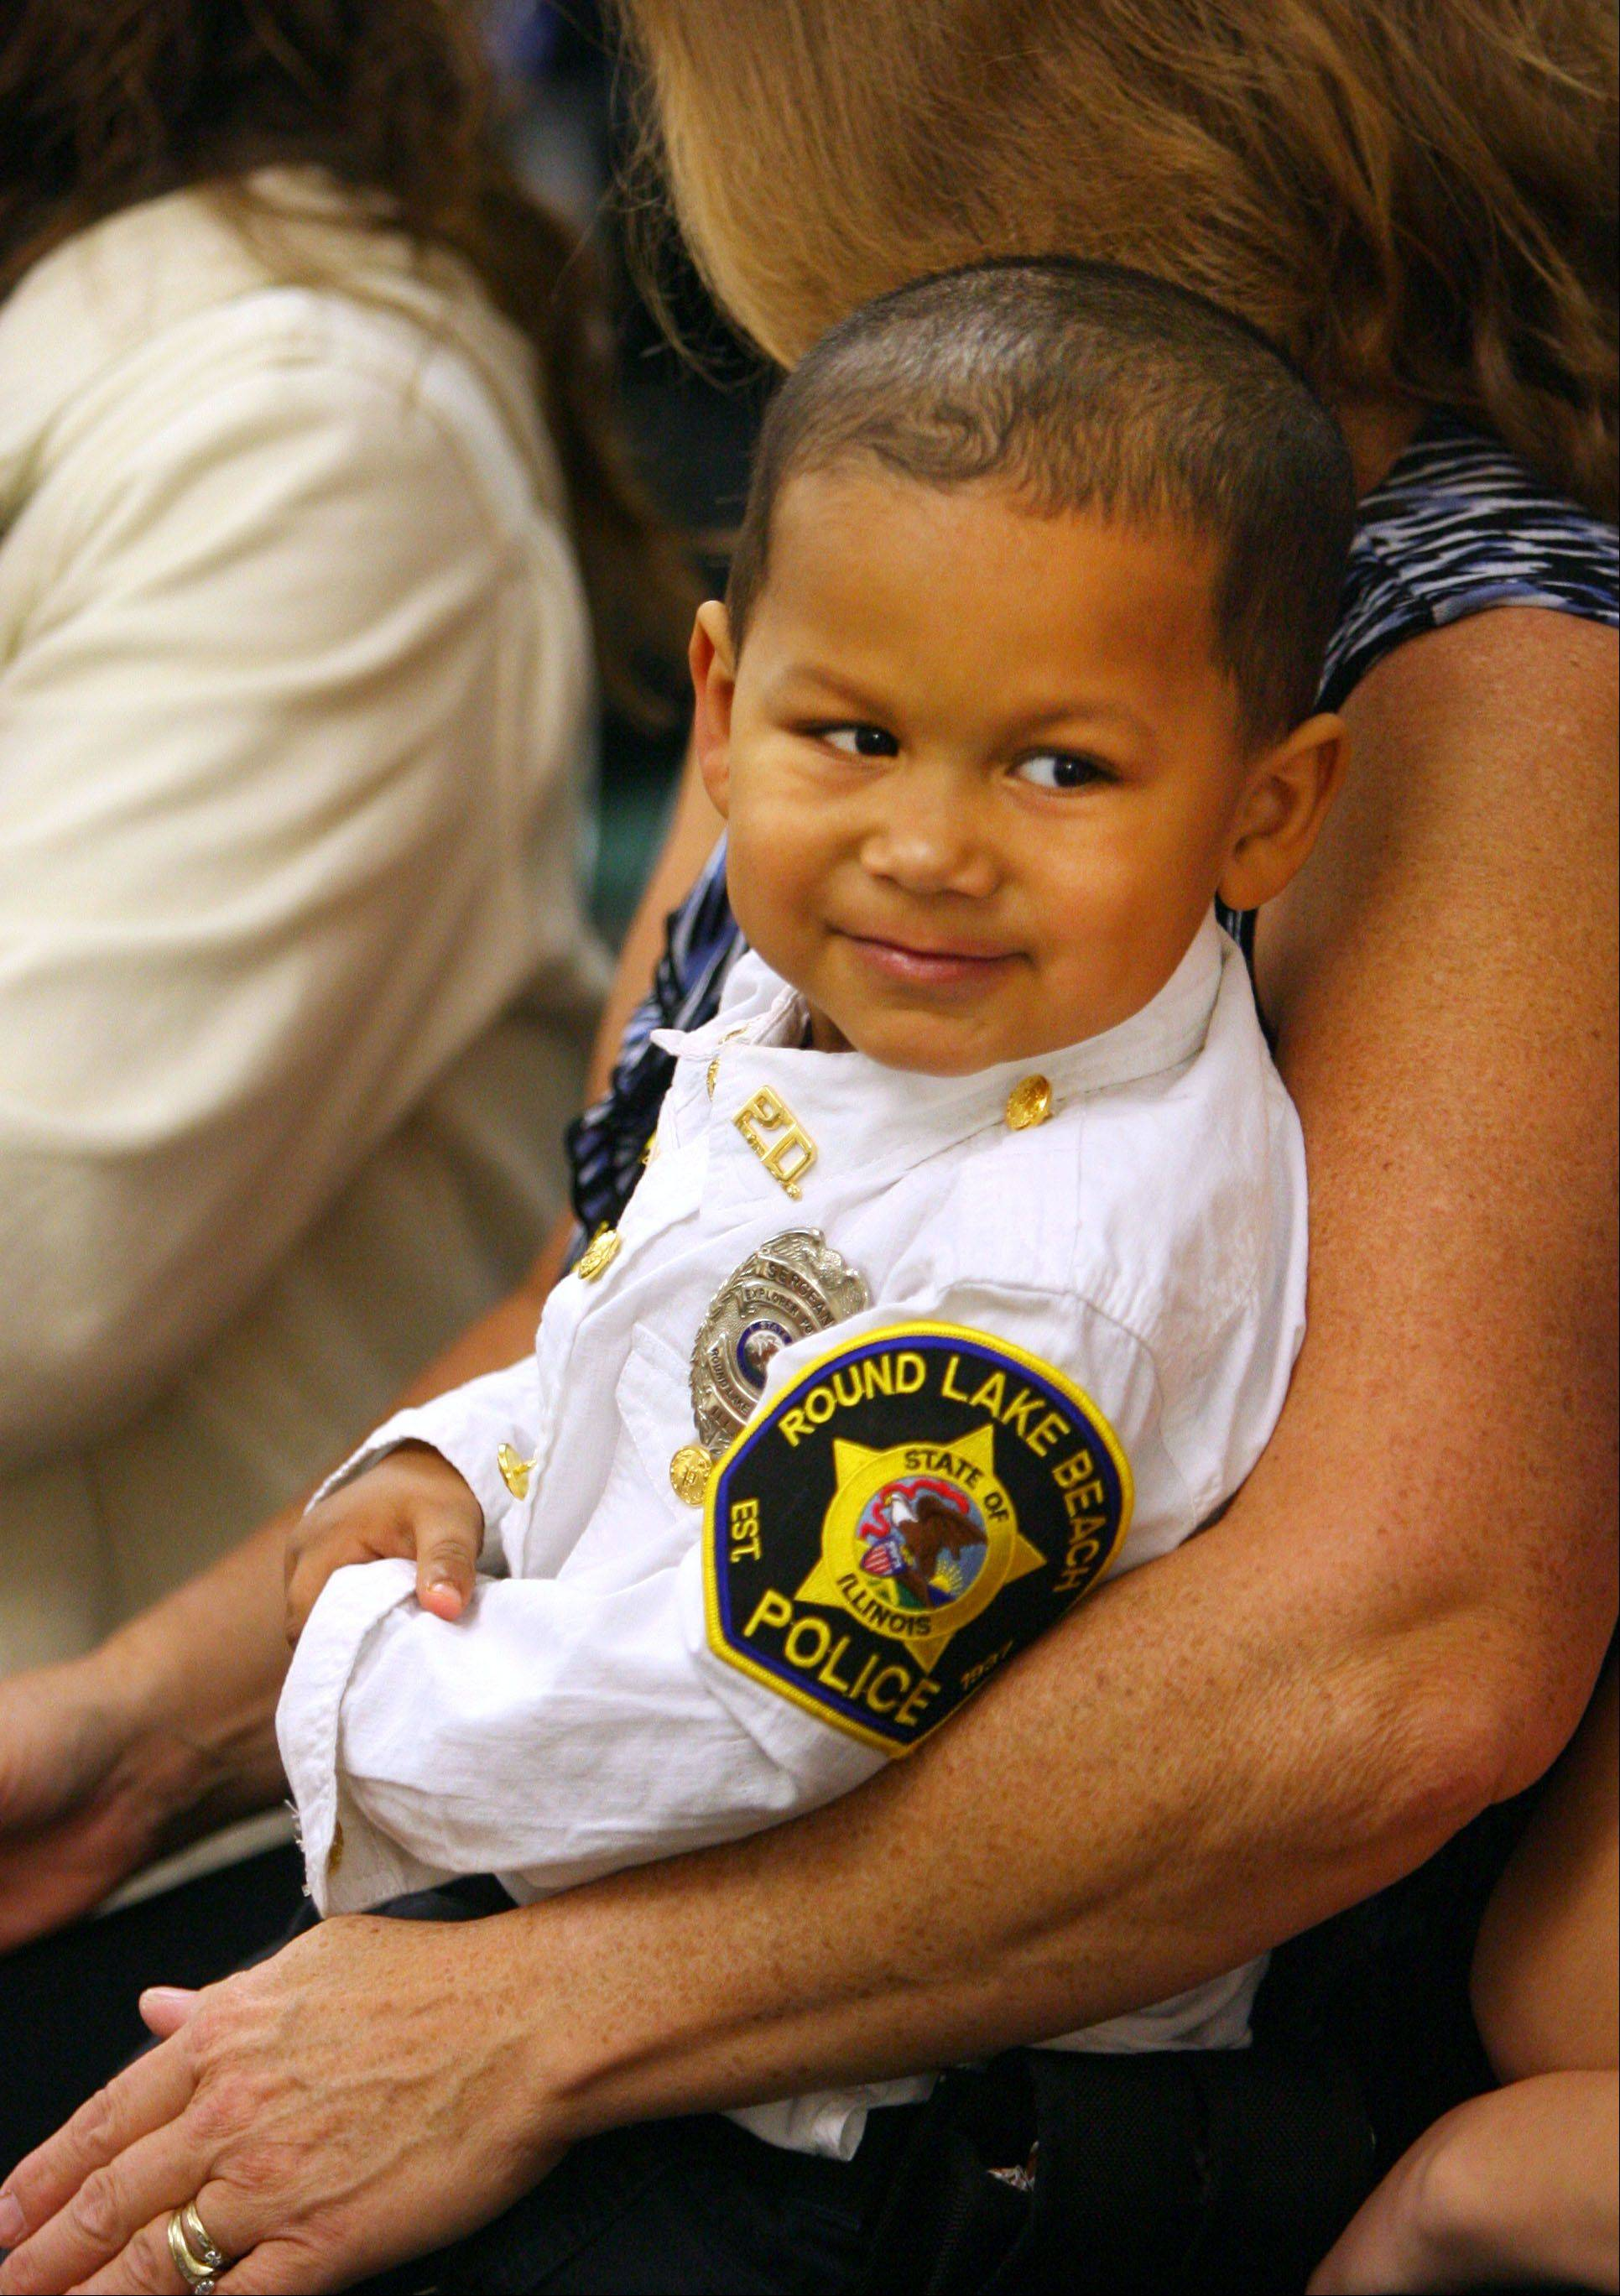 Mekhi Carter was all smiles after being recognized as a Junior Round Lake Beach Police Officer. The 3½-year-old was born with a heart condition and has had three open-heart surgeries. The department gave him a custom made police uniform for Halloween and followed up with the recognition.